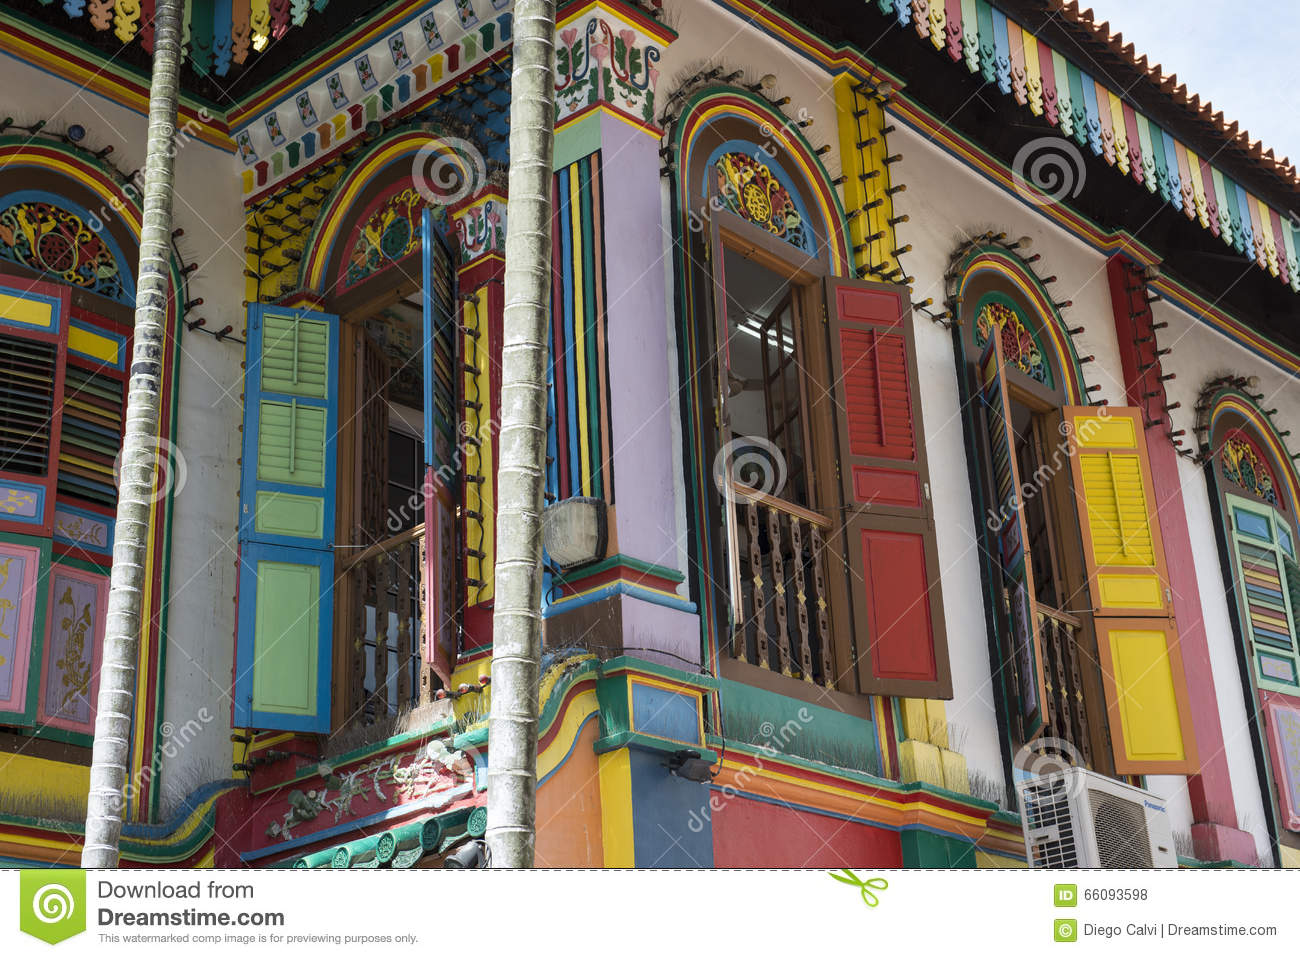 Indian colorful building Streets in the city of Singapore.